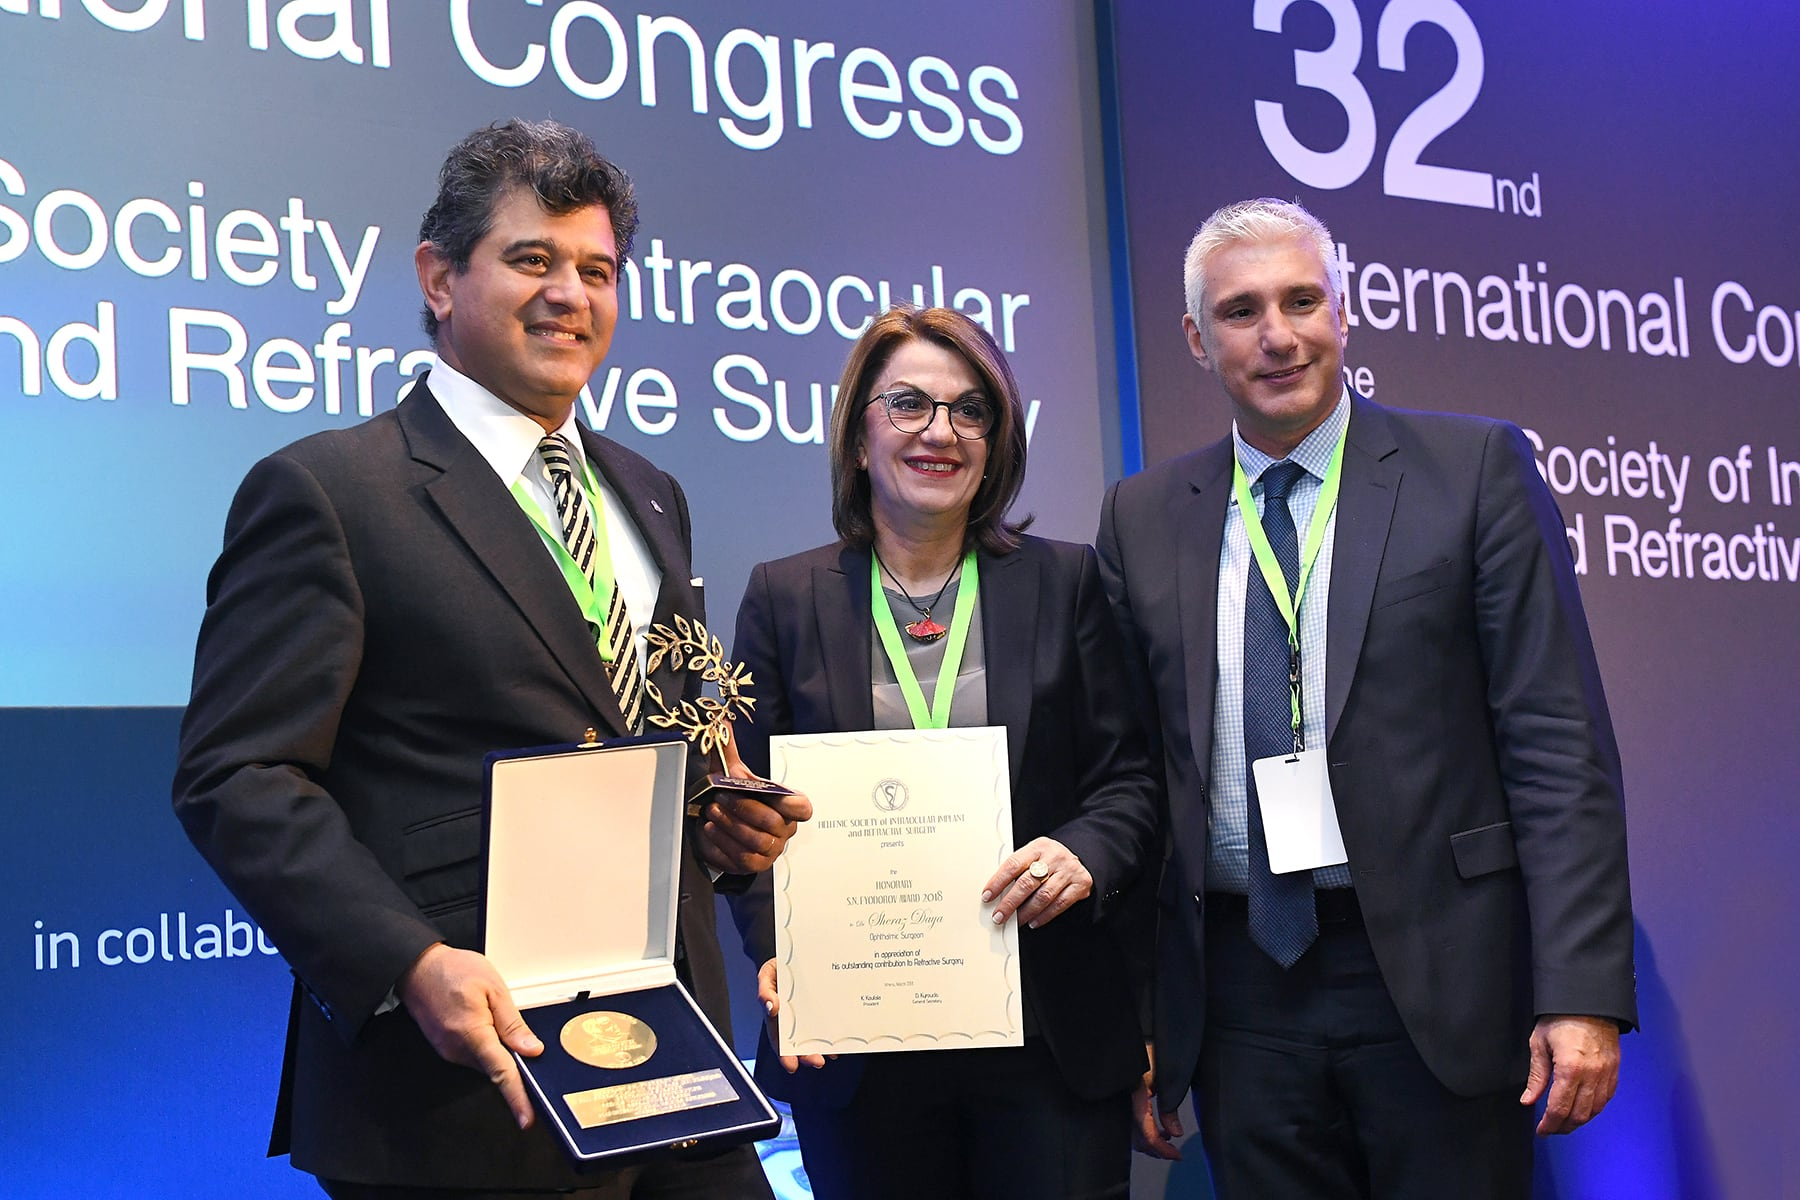 Sheraz Daya awarded the Fyodorov Medal in Greece